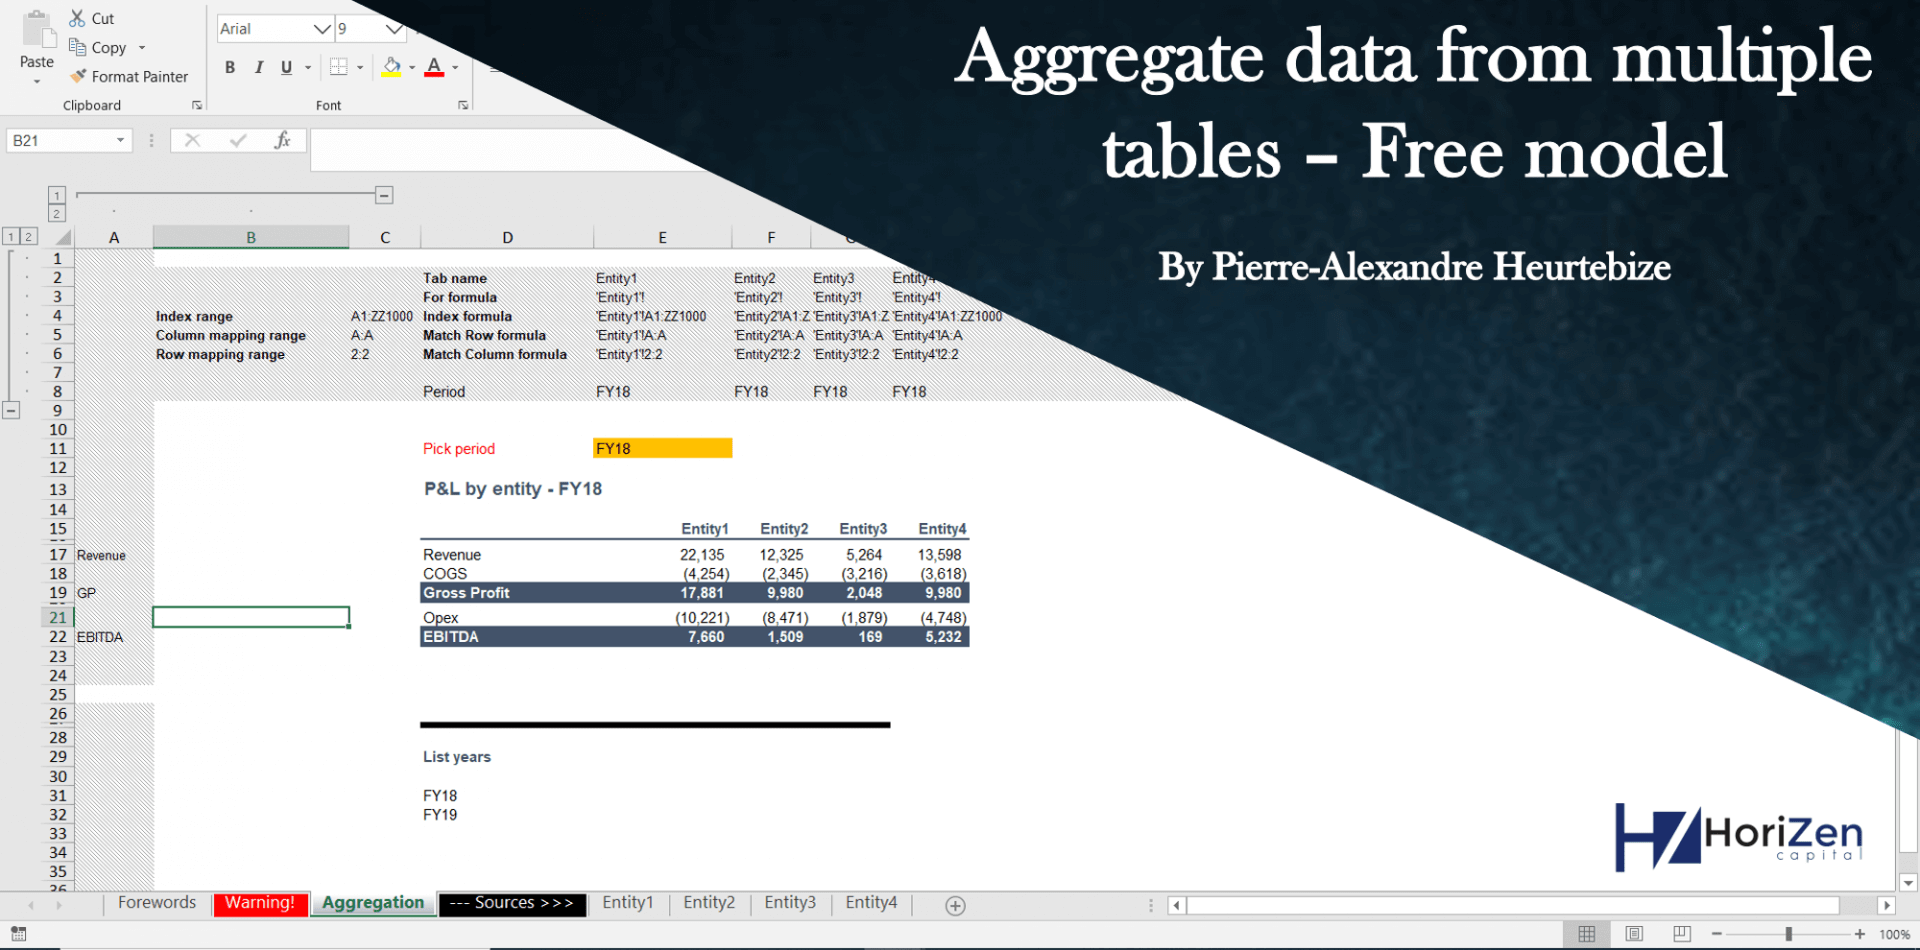 Calculation of Depreciation & Amortization from Capex Excel Model - Templarket -  Business Templates Marketplace